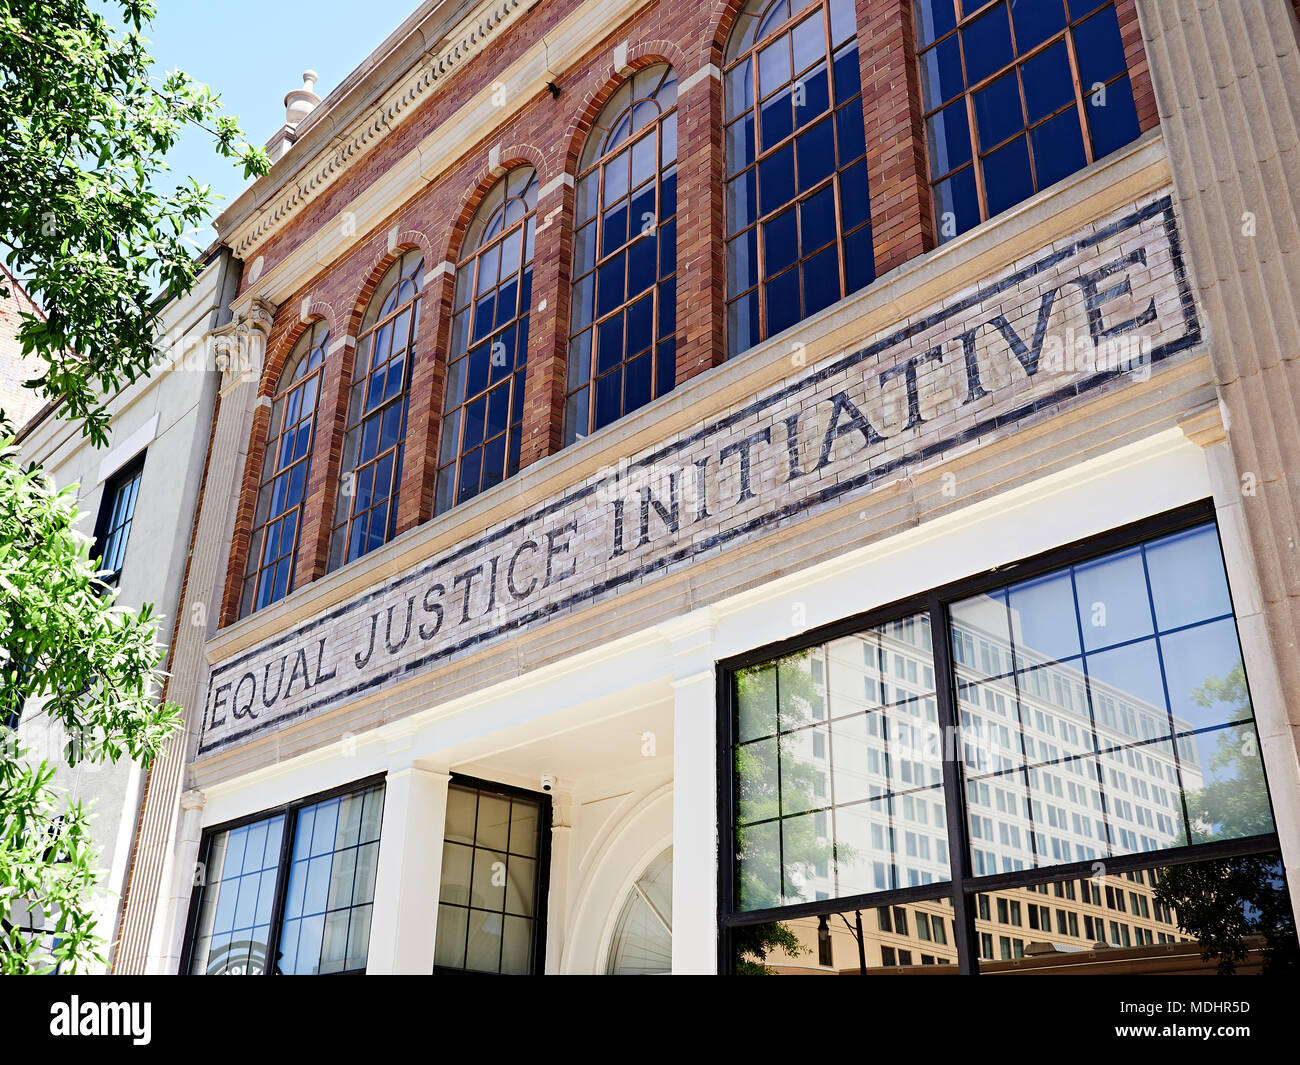 Equal Justice Initiative sign above the exterior entrance to the building and offices in Montgomery Alabama, USA. - Stock Image